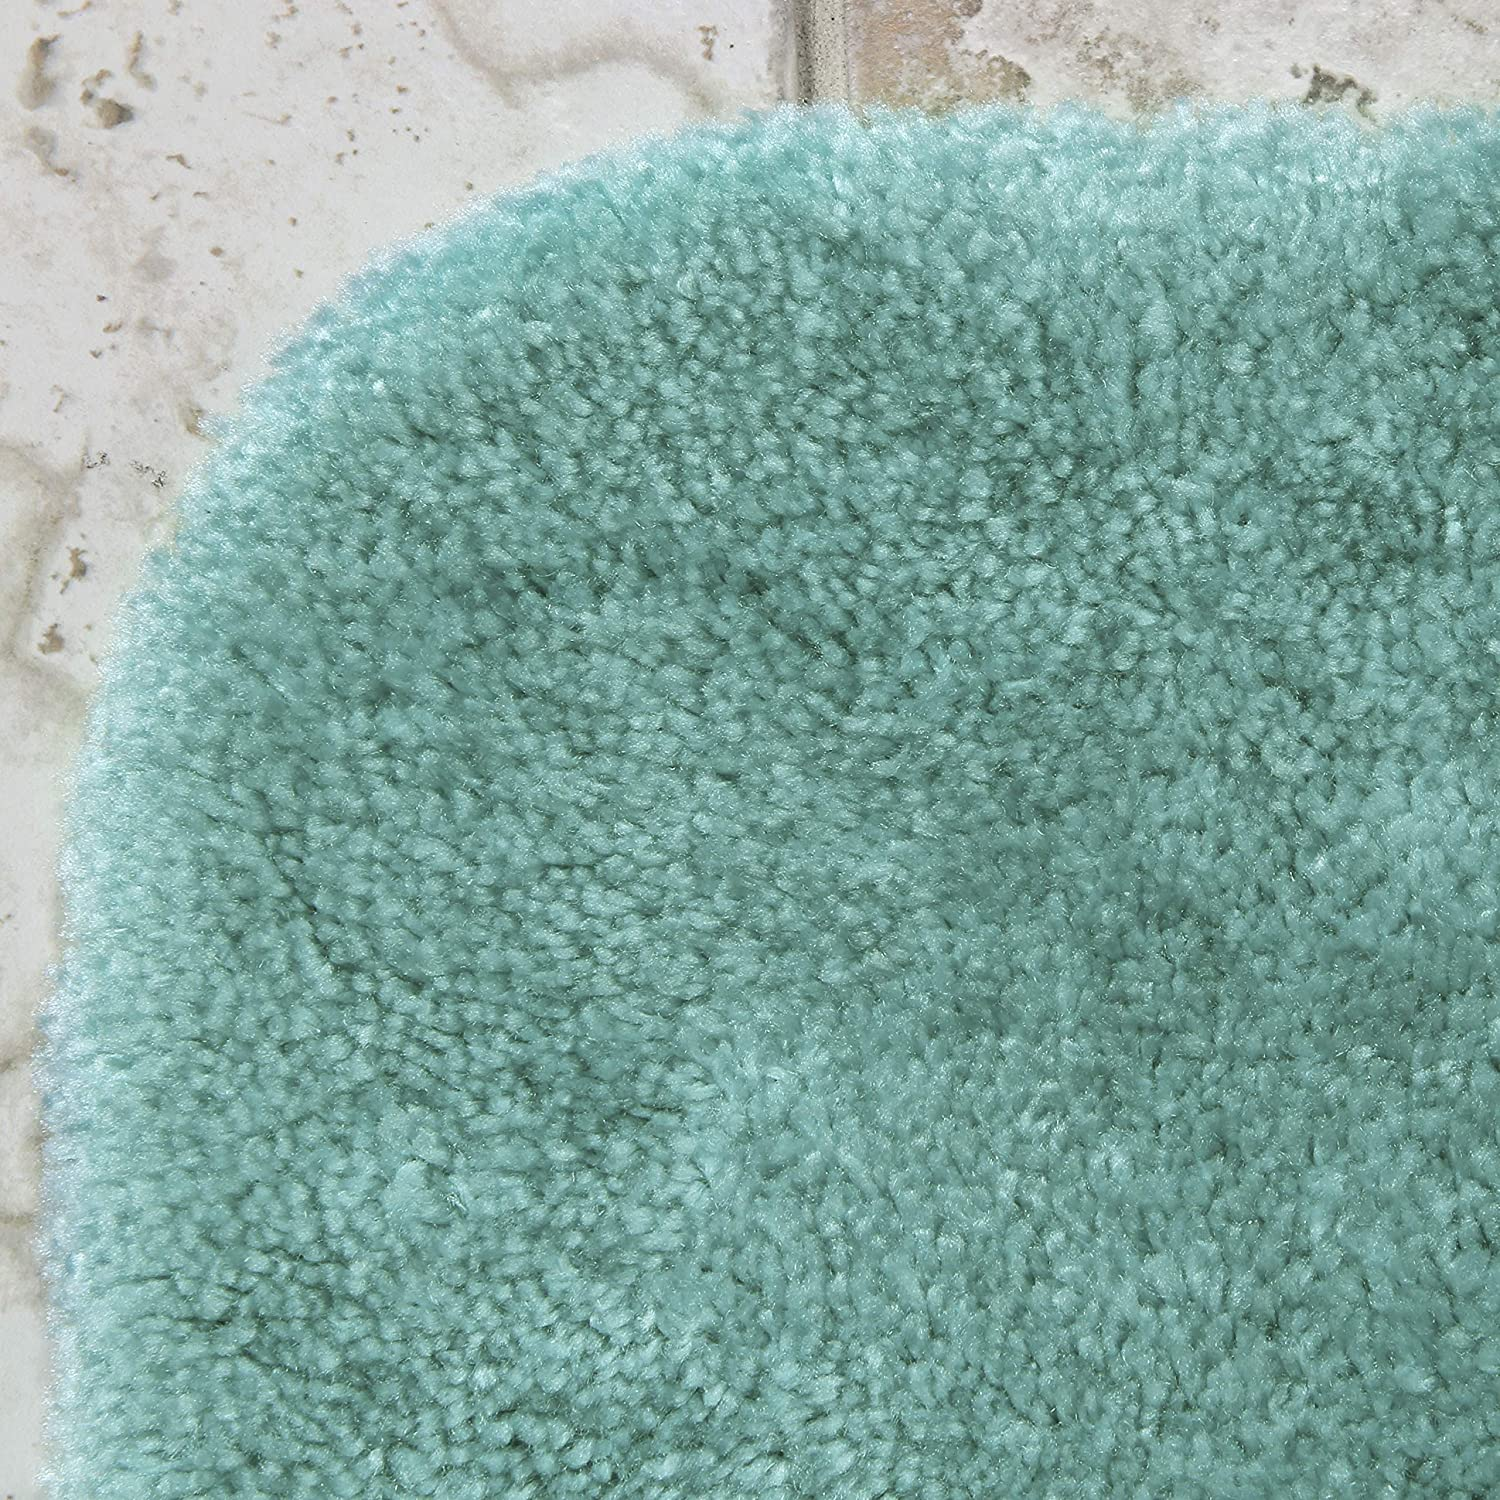 Colorsoft 17 x 24 Non Slip Washable Bath Mat Made in USA} Soft /& Quick Dry for Vanity and Shower Chocolate Nib Maples Rugs Bathroom Rugs